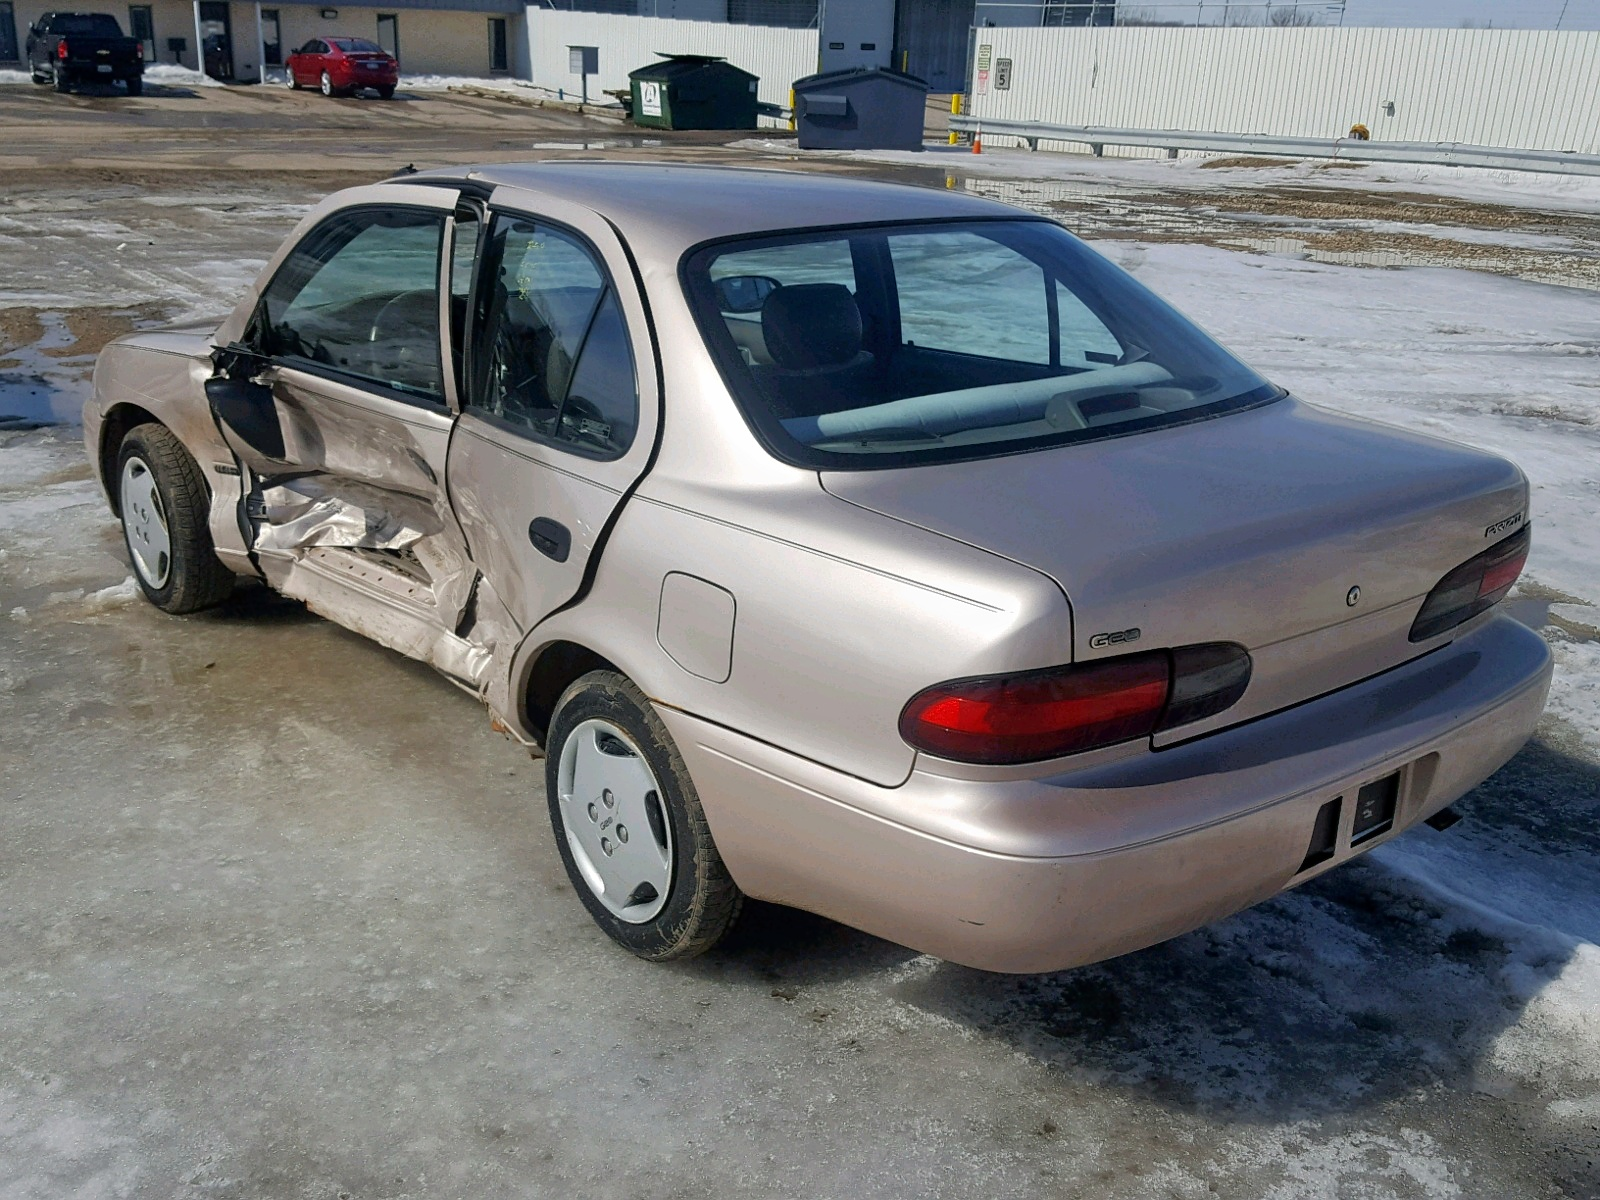 hight resolution of  1y1sk5267sz051751 1995 geo prizm base 1 6l angle view 1y1sk5267sz051751